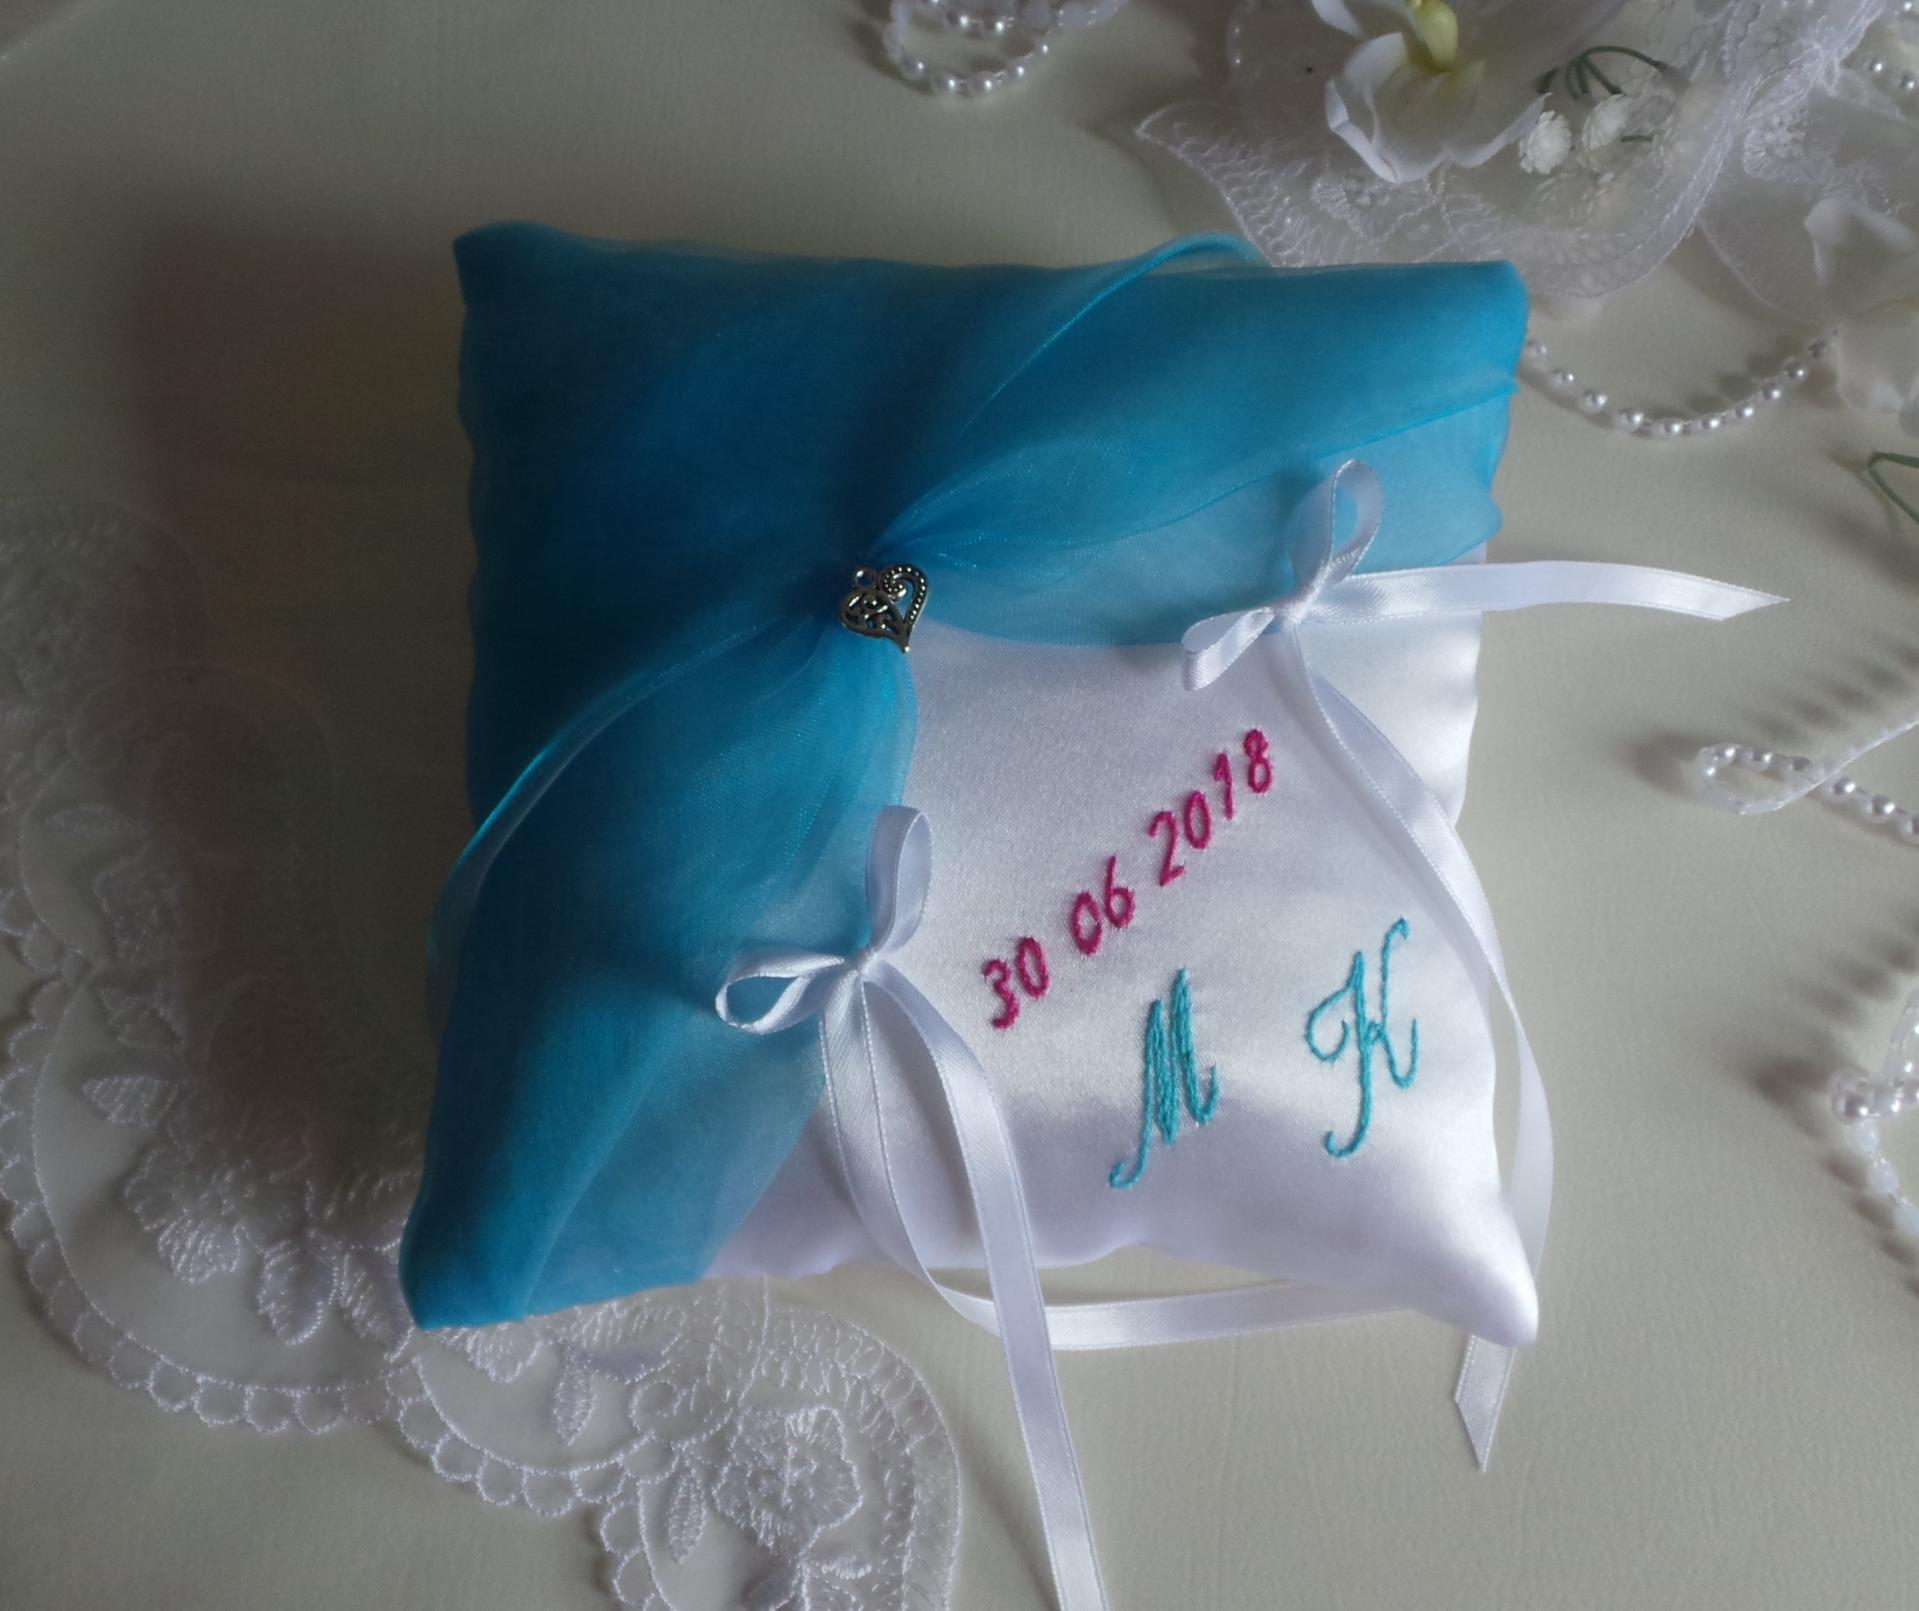 Coussin mariage bleu turquoise